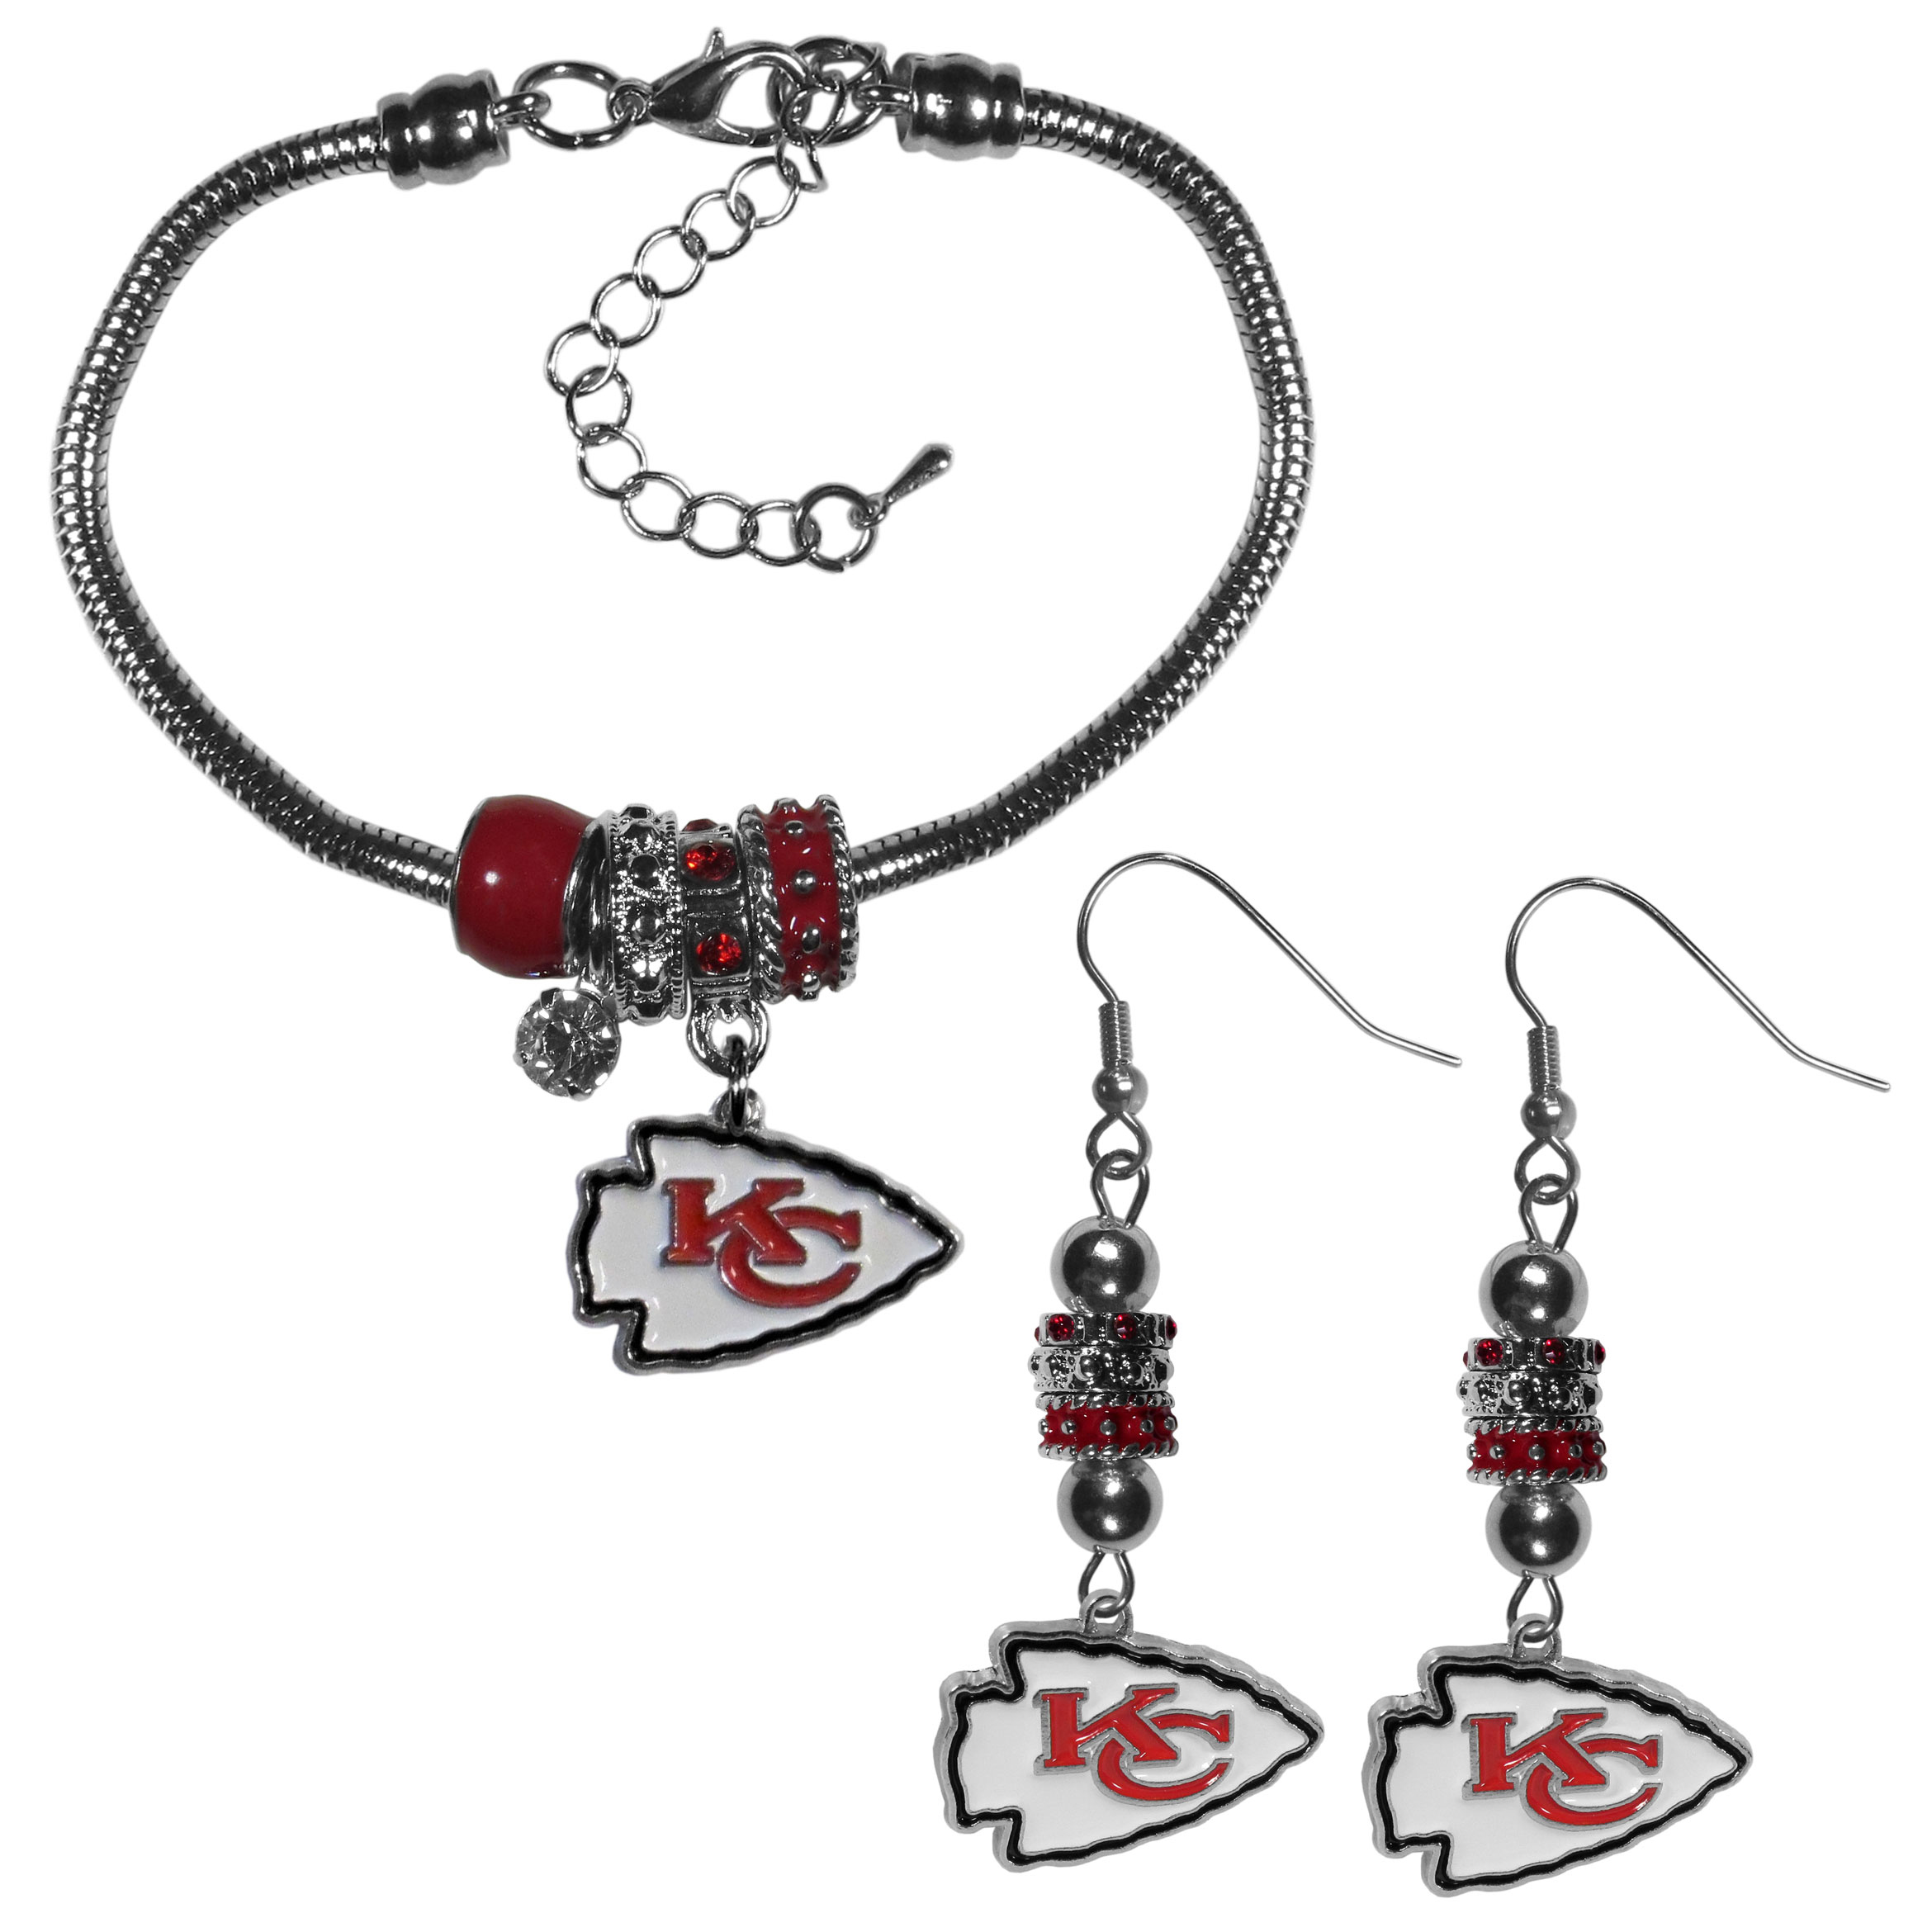 Kansas City Chiefs Euro Bead Earrings and Bracelet Set - We combine the popular Euro bead style with your love of the Kansas City Chiefs with this beautiful jewelry set that includes earrings and a matching bracelet. The stylish earrings feature hypoallergenic, nickel free fishhook posts and 3 team colored Euro beads and a metal team charm. The matching snake chain bracelet is 7.5 inches long with a 2 inch extender and 4 Euro beads with a rhinestone charm and team charm.